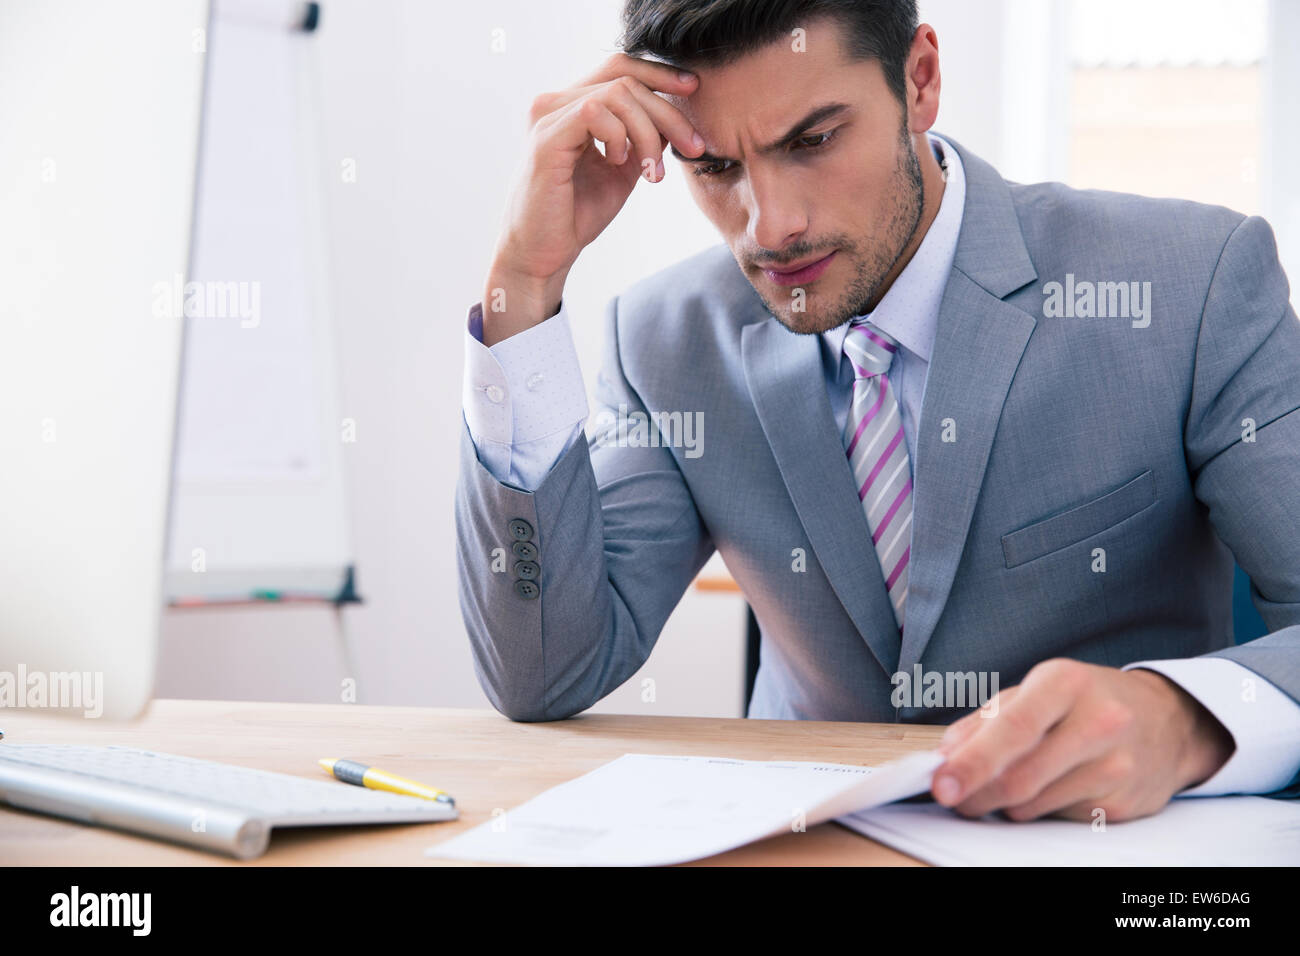 Handsome businessman sitting at the table in office and reading document - Stock Image